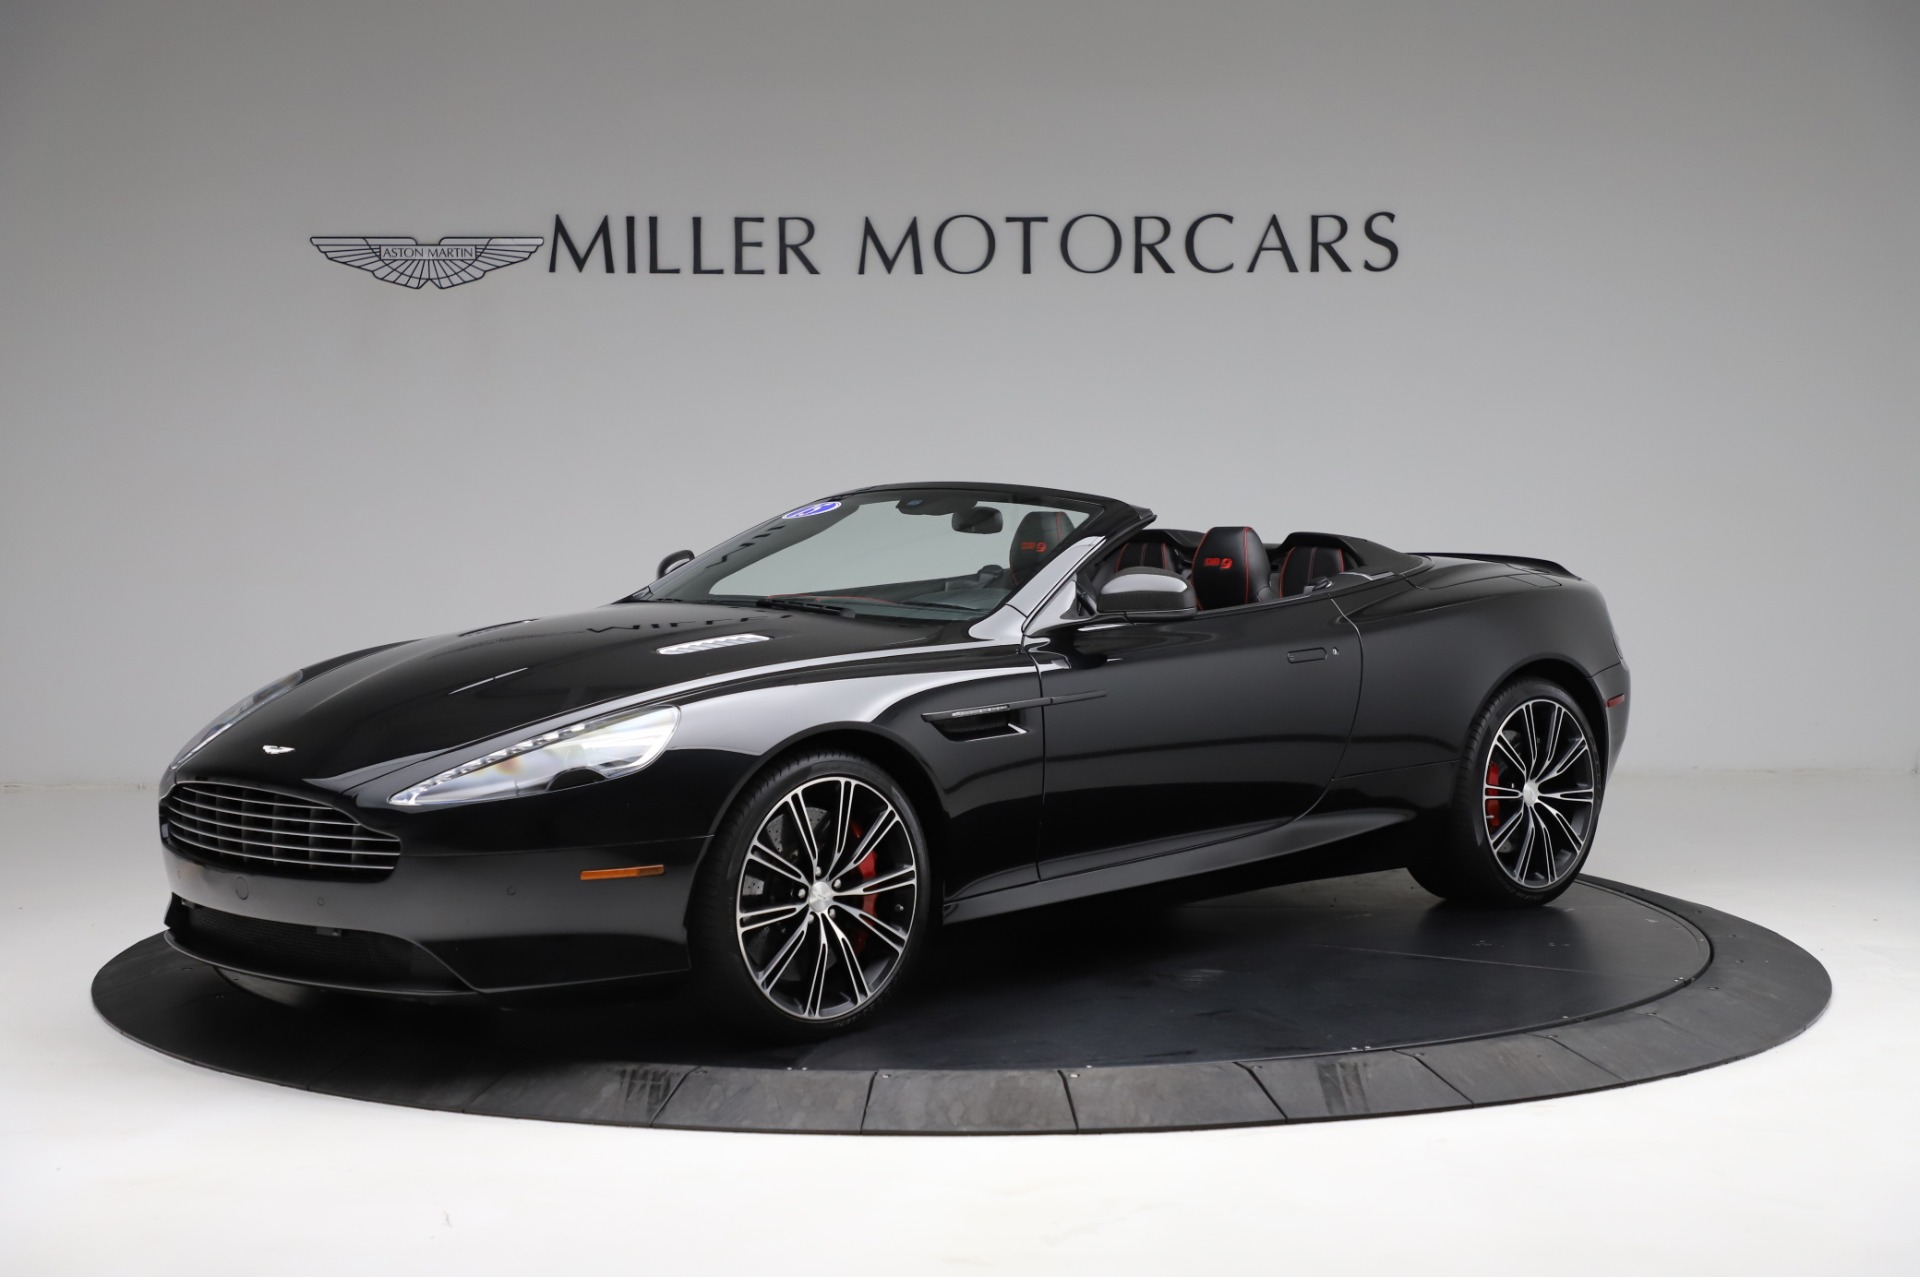 Used 2015 Aston Martin DB9 Convertible for sale Sold at Bentley Greenwich in Greenwich CT 06830 1